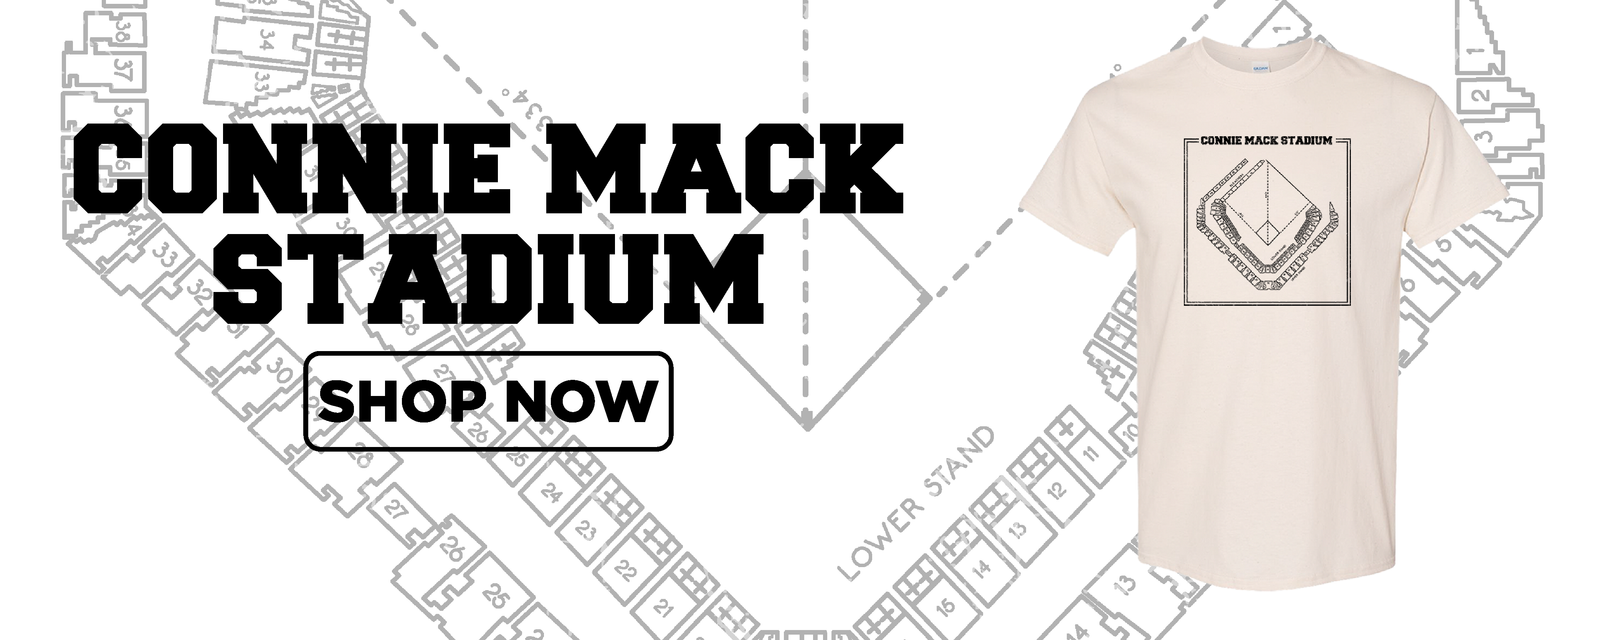 Connie Mack Retro Collection | Connie Mack Stadium Vintage Collection